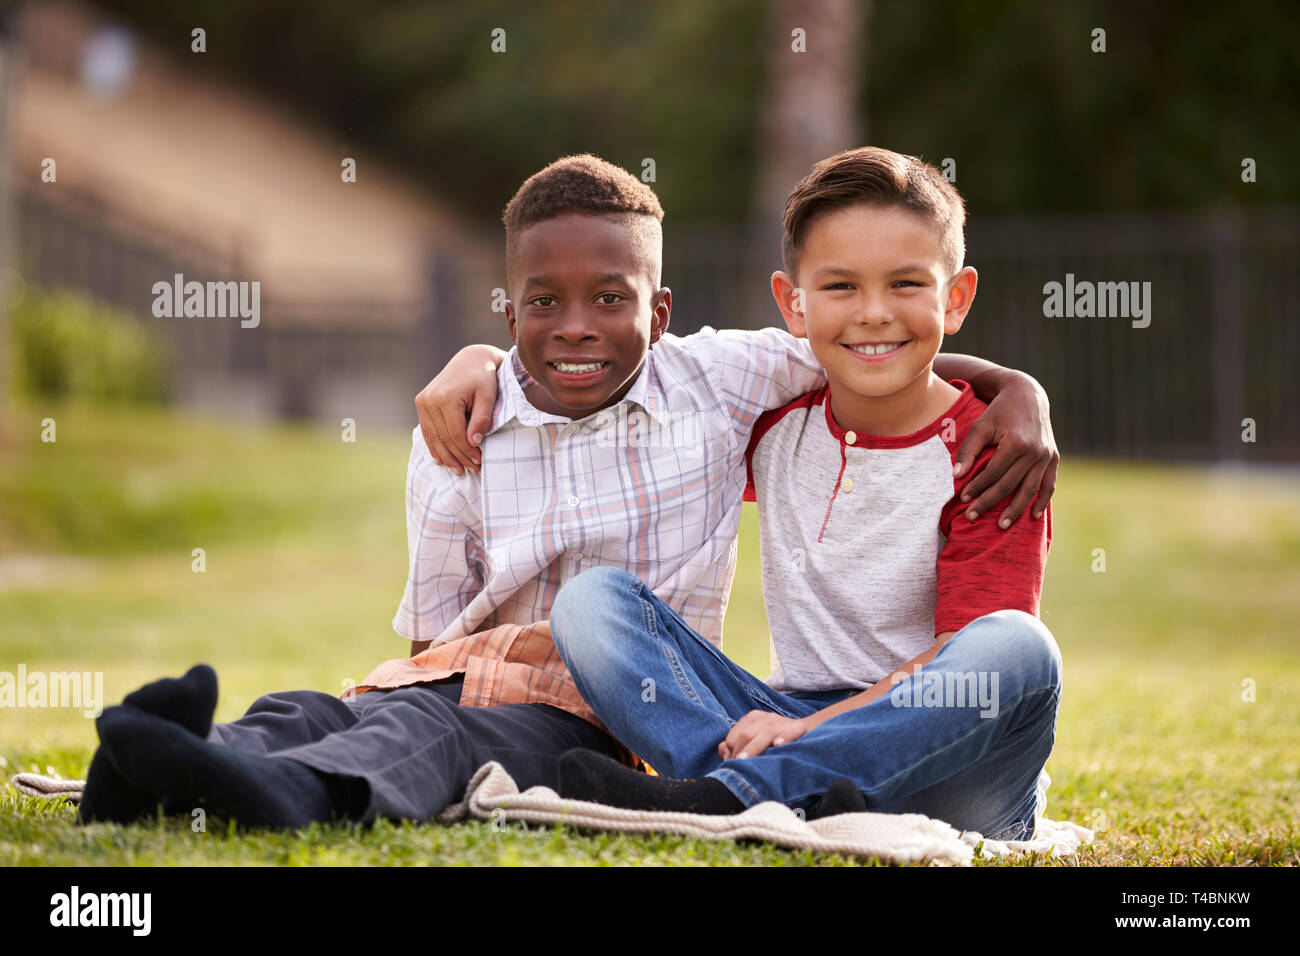 Two pre-teen male friends sitting on the grass in a park, arms around each other, looking to camera - Stock Image